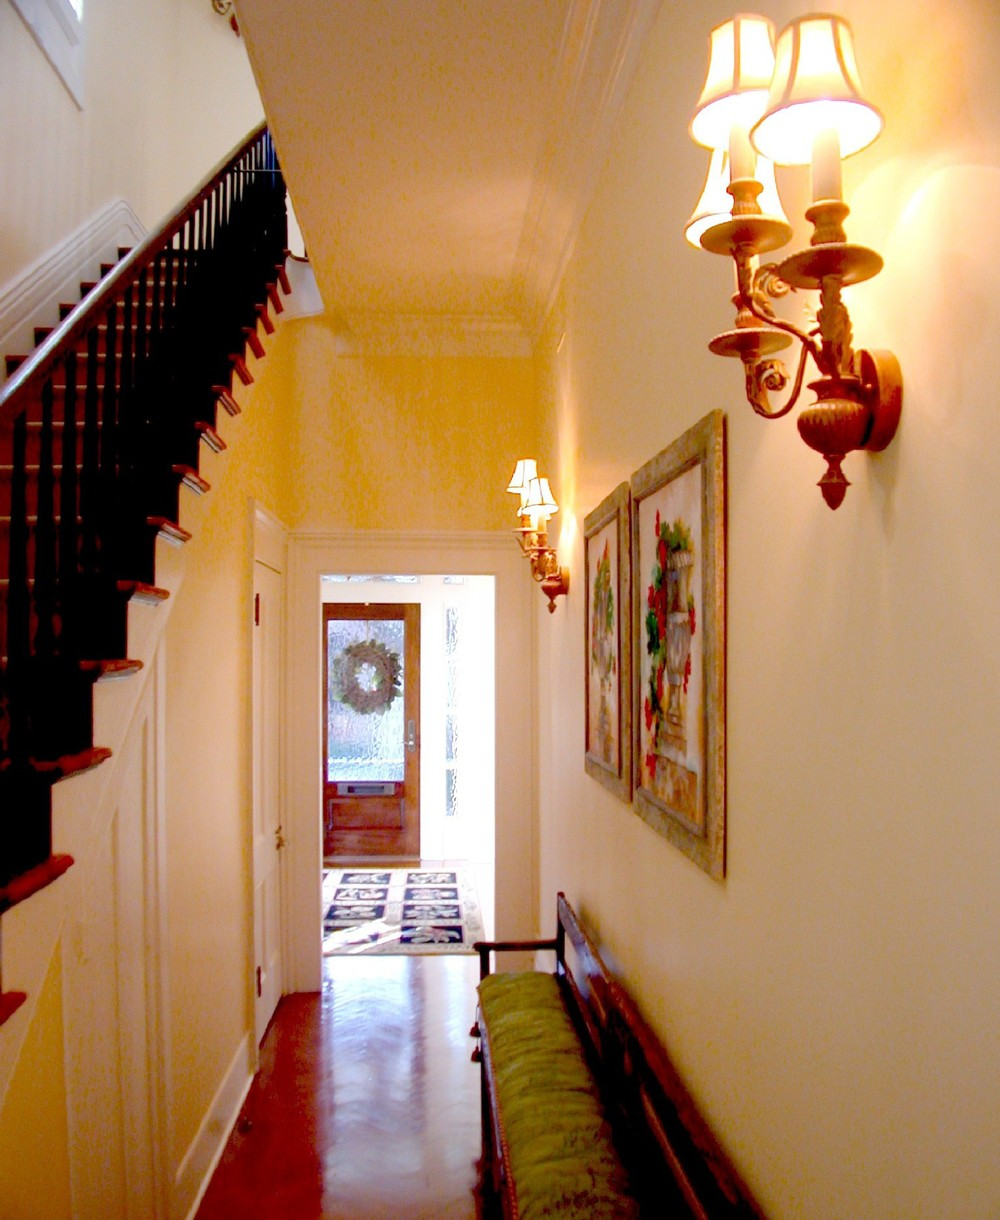 stair entry.JPG